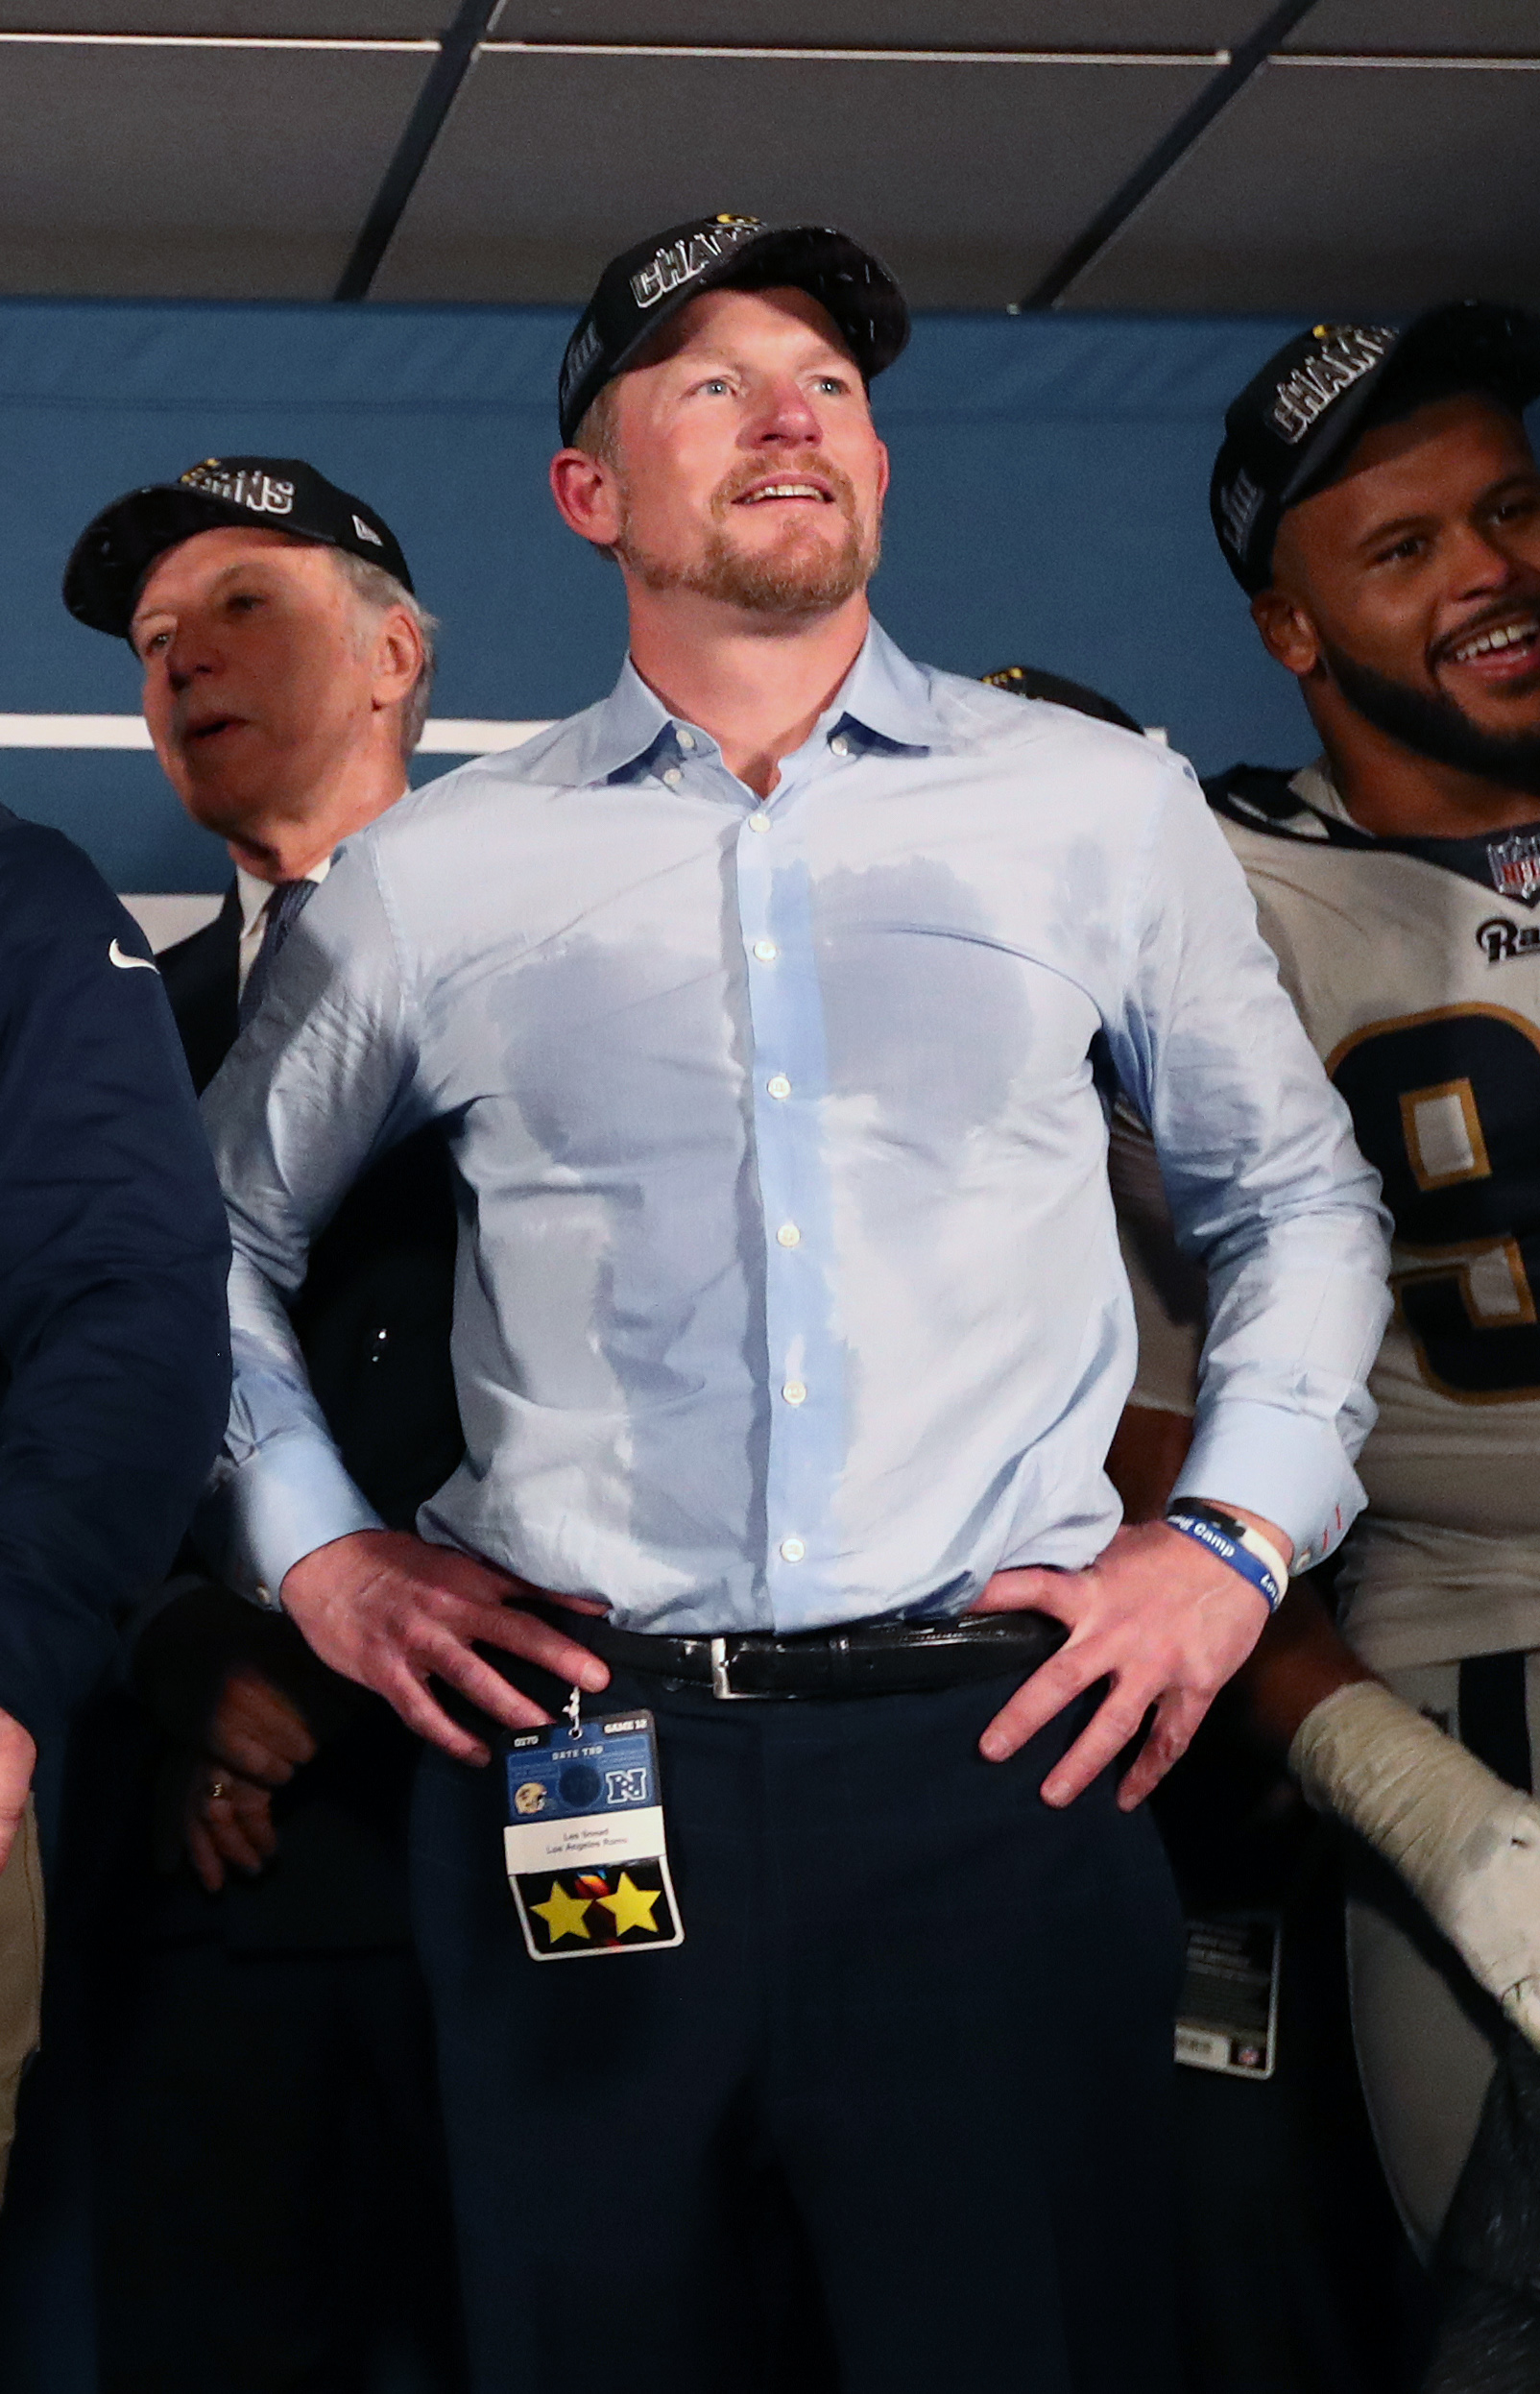 Los Angeles Rams General Manager Les Snead celebrates in the locker room after the Rams' victory in the NFC Championship game over the New Orleans Saints, Jan. 20, 2019.